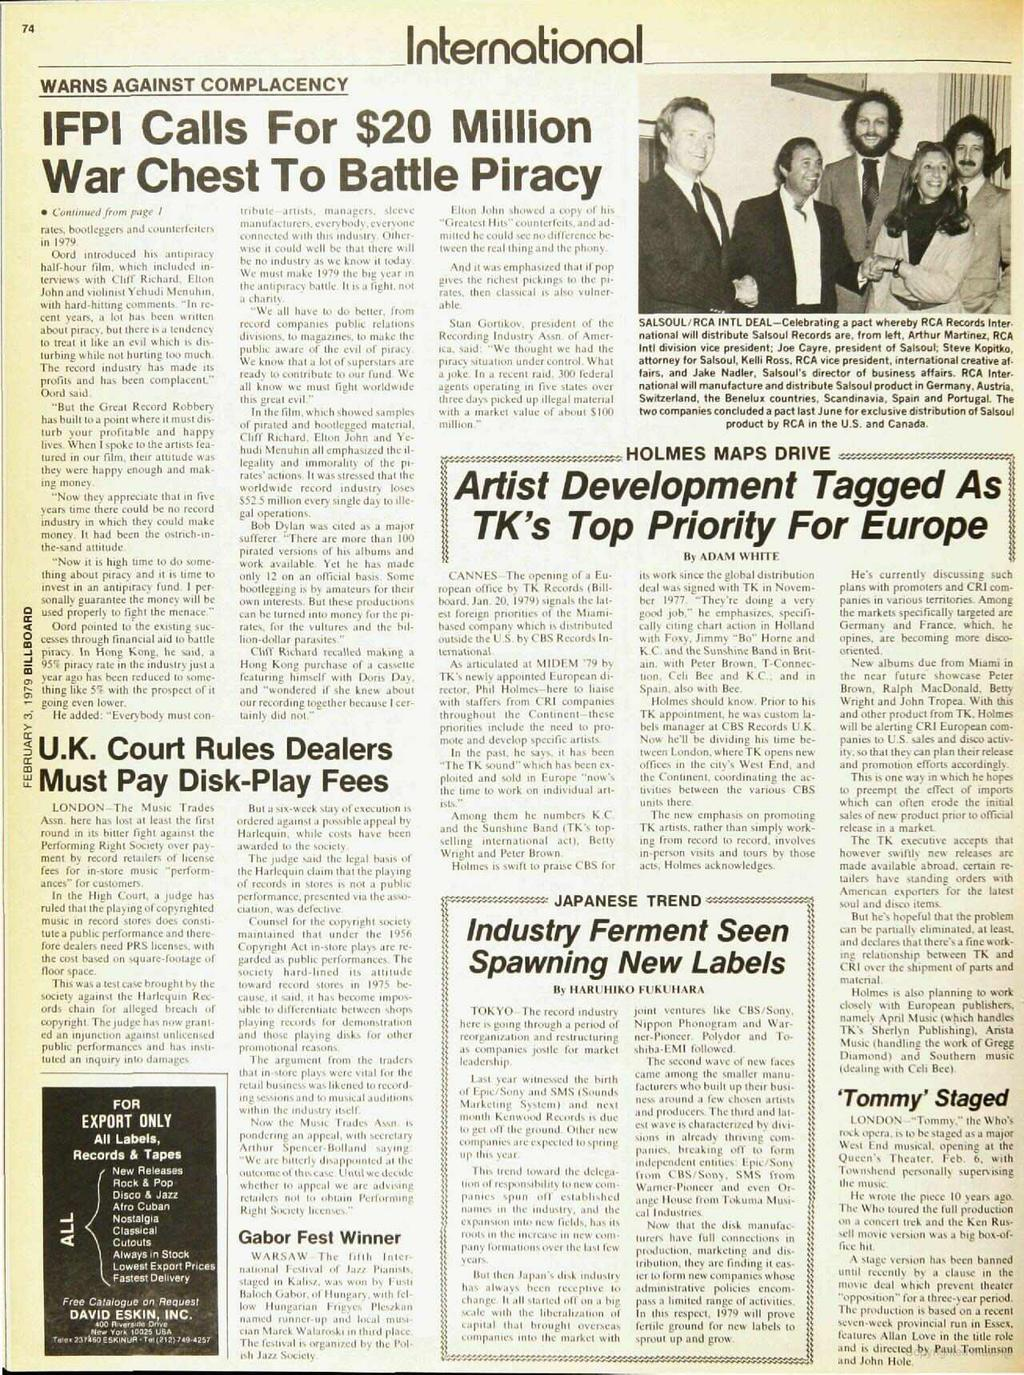 74 neeinalional WARNS AGANST COMPLACENCY FP Calls For $20 Million War Chest To Battle Piracy Columned from page rates. bootleggers and counterfeiters n 1979.